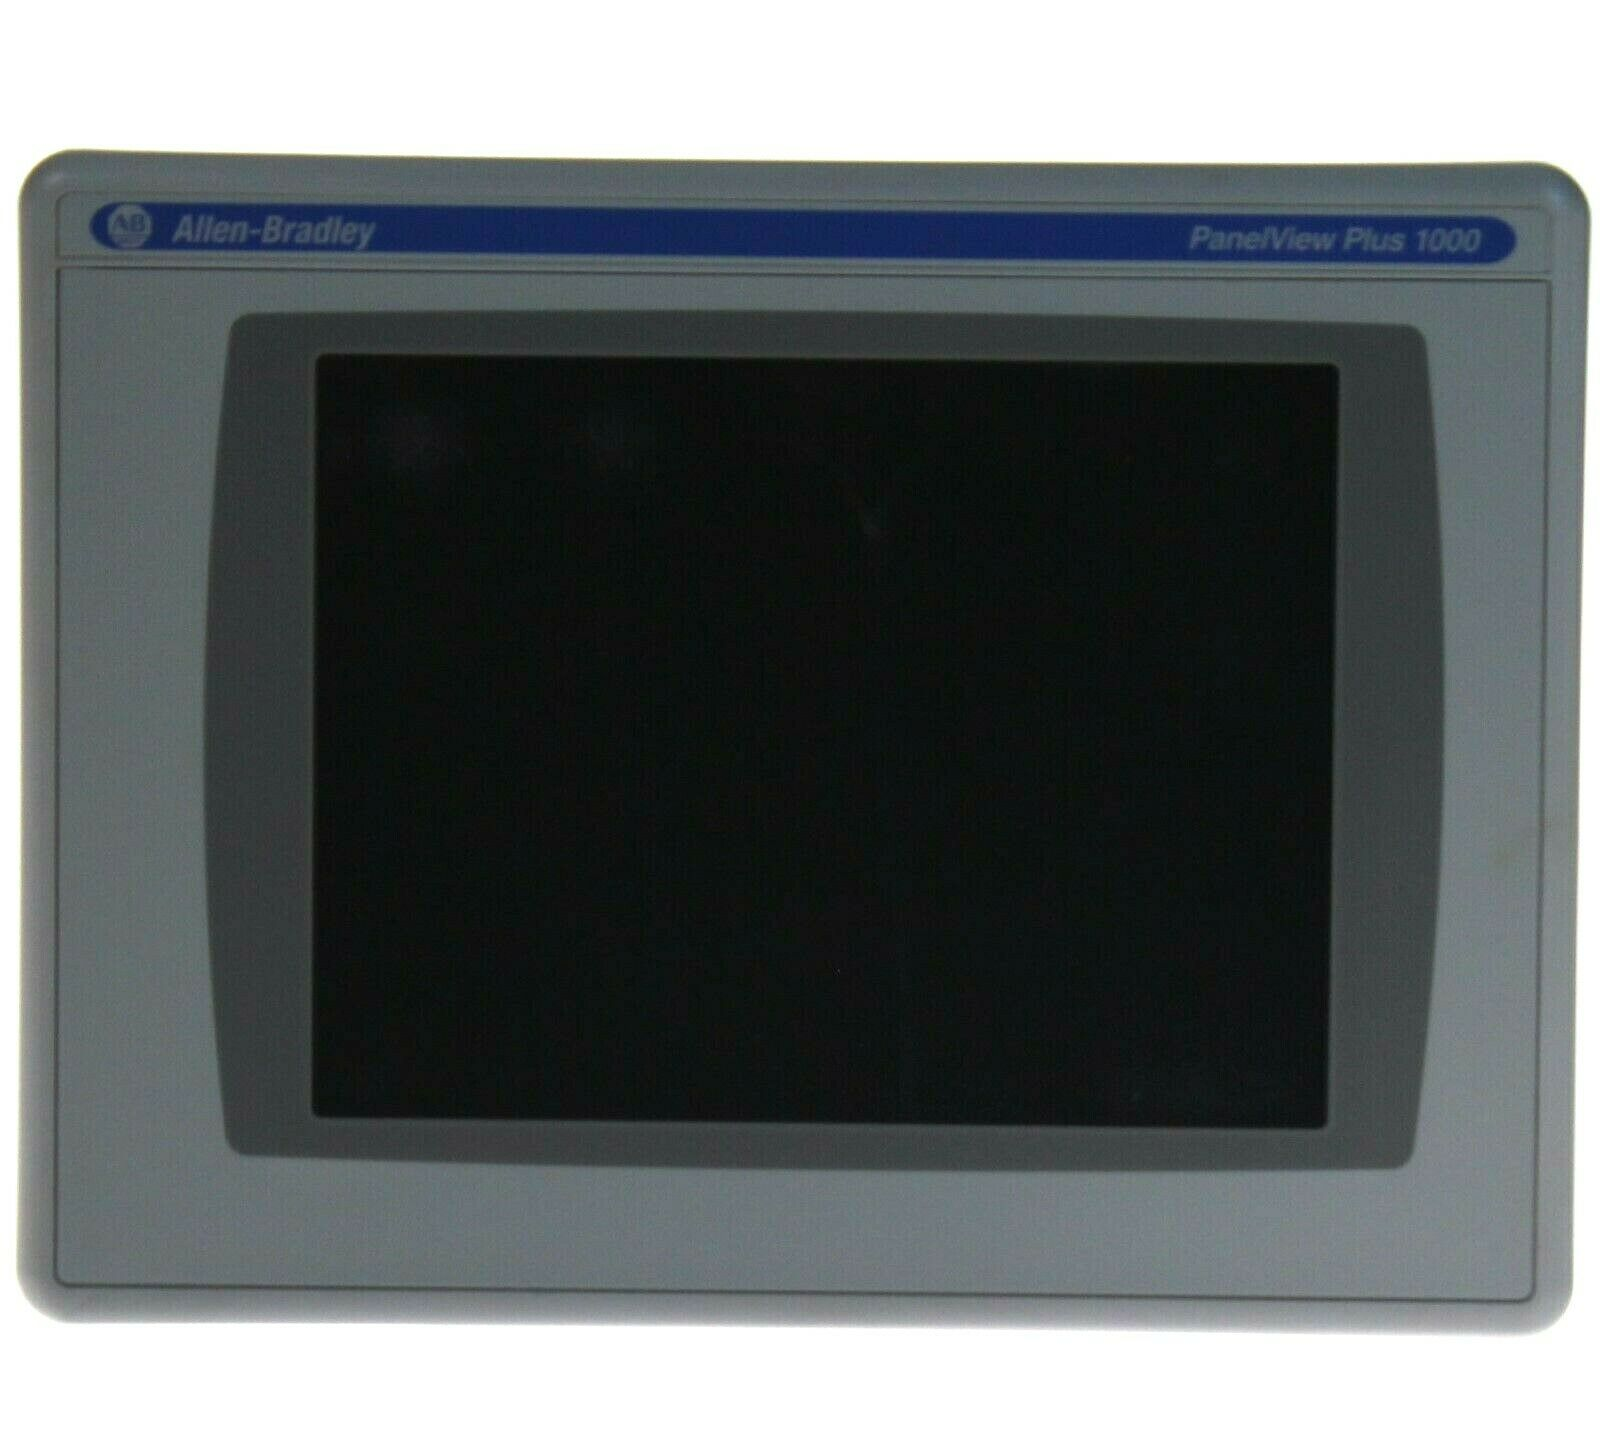 Allen Bradley 2711P-T10C4D1 /A PanelView Plus 1000 Assembled Color Touchscreen